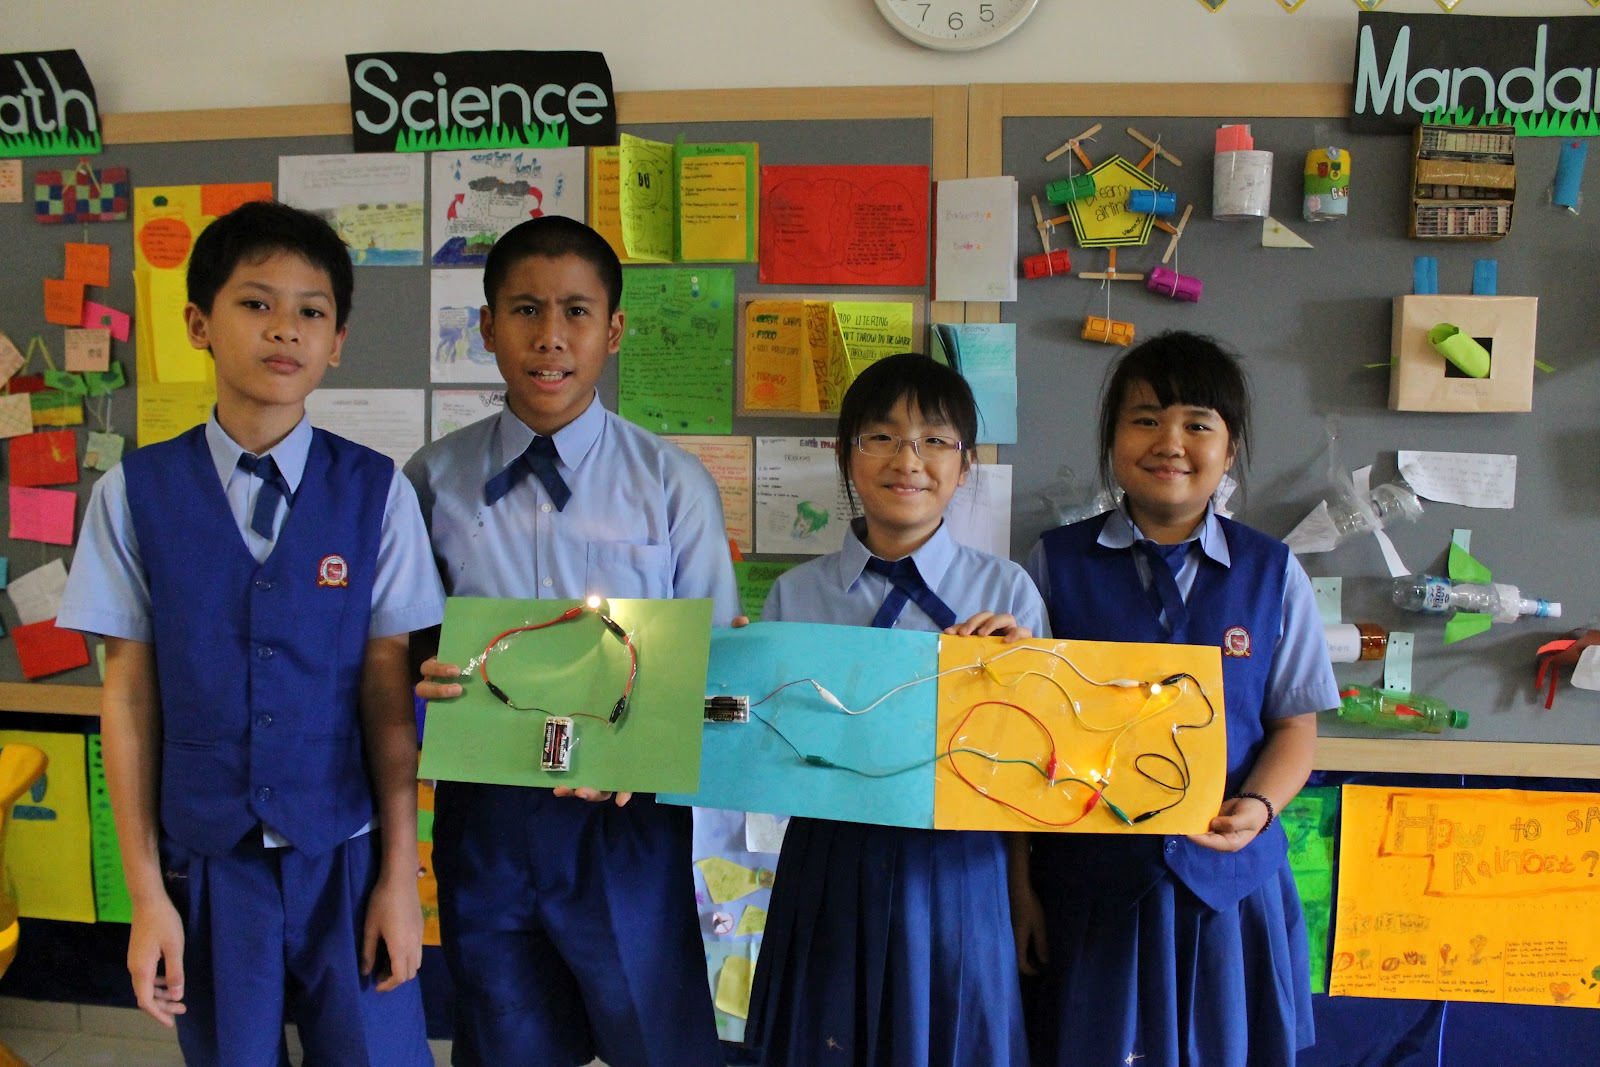 making of parallel and series circuit science presentation